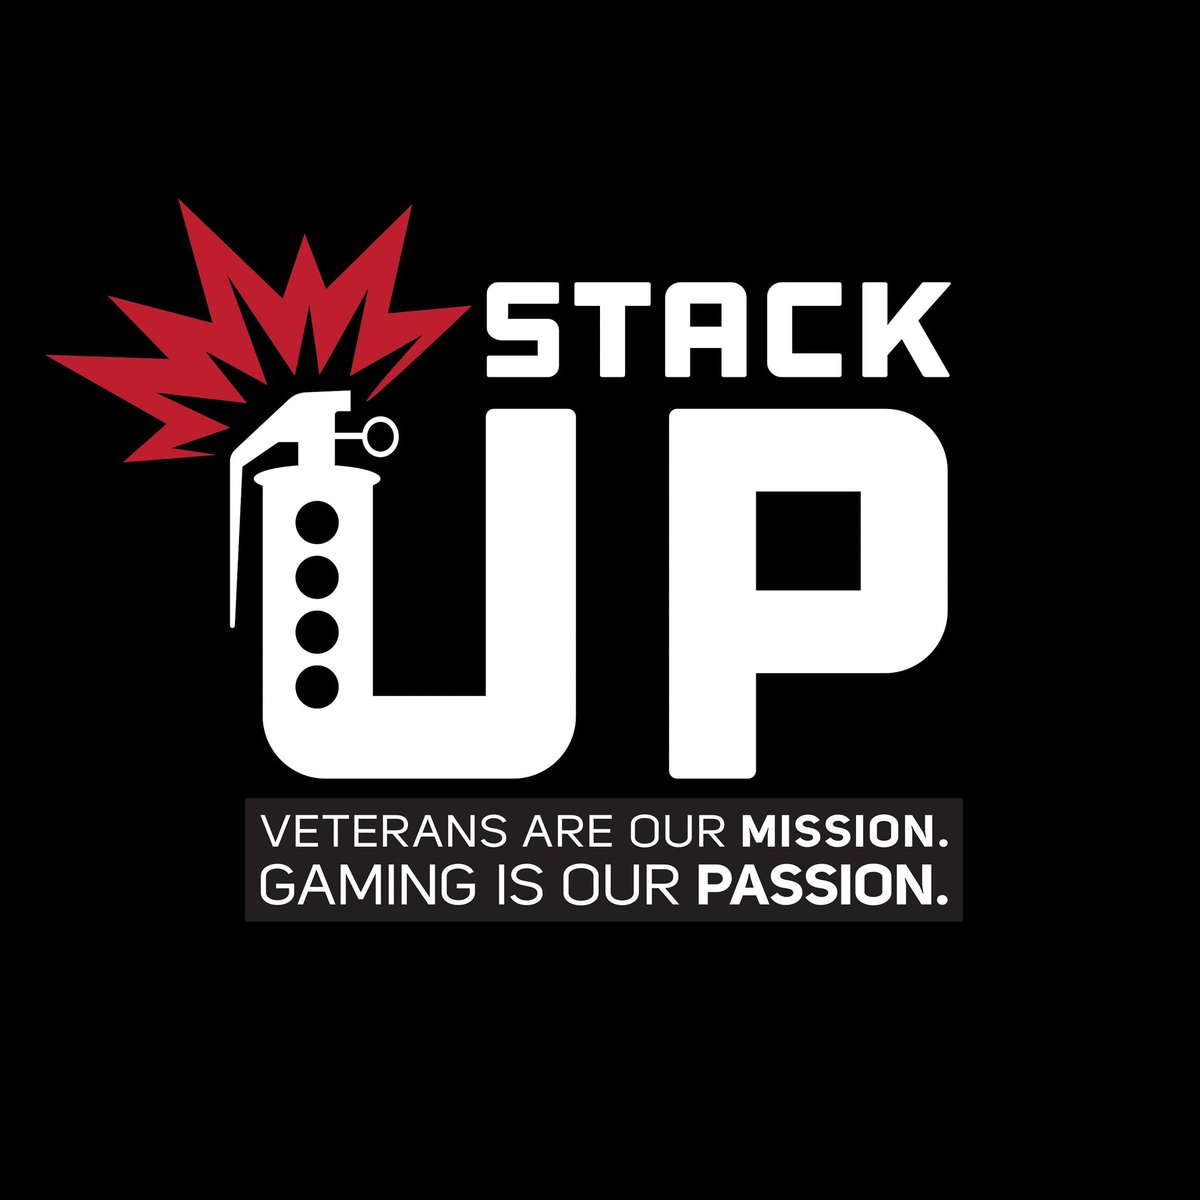 Happy 4th of July we are going live at noon playing Atlas @stackupdotorg  charity stream   http://Twitch.tv/Solitude3pt0  #calltoarms  #twitchaffiliate #pcbuilder #pcgaming #xboxgamer #pcmr #dadgamer #pcmodding #pcbuilds #Pittsburghgamer #twitch #pcmrbuildspic.twitter.com/y91DFkInki